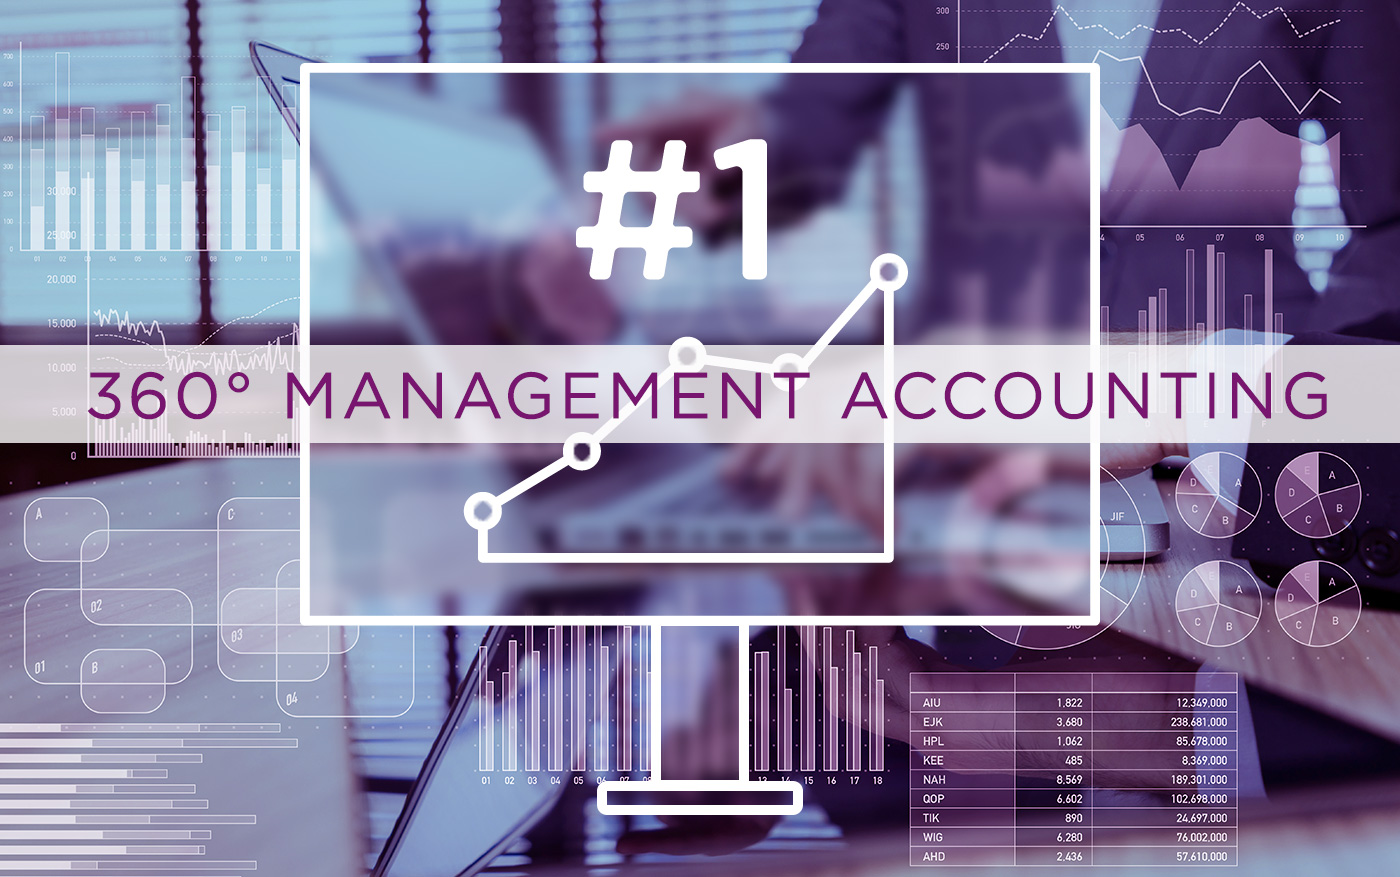 360 management accounting